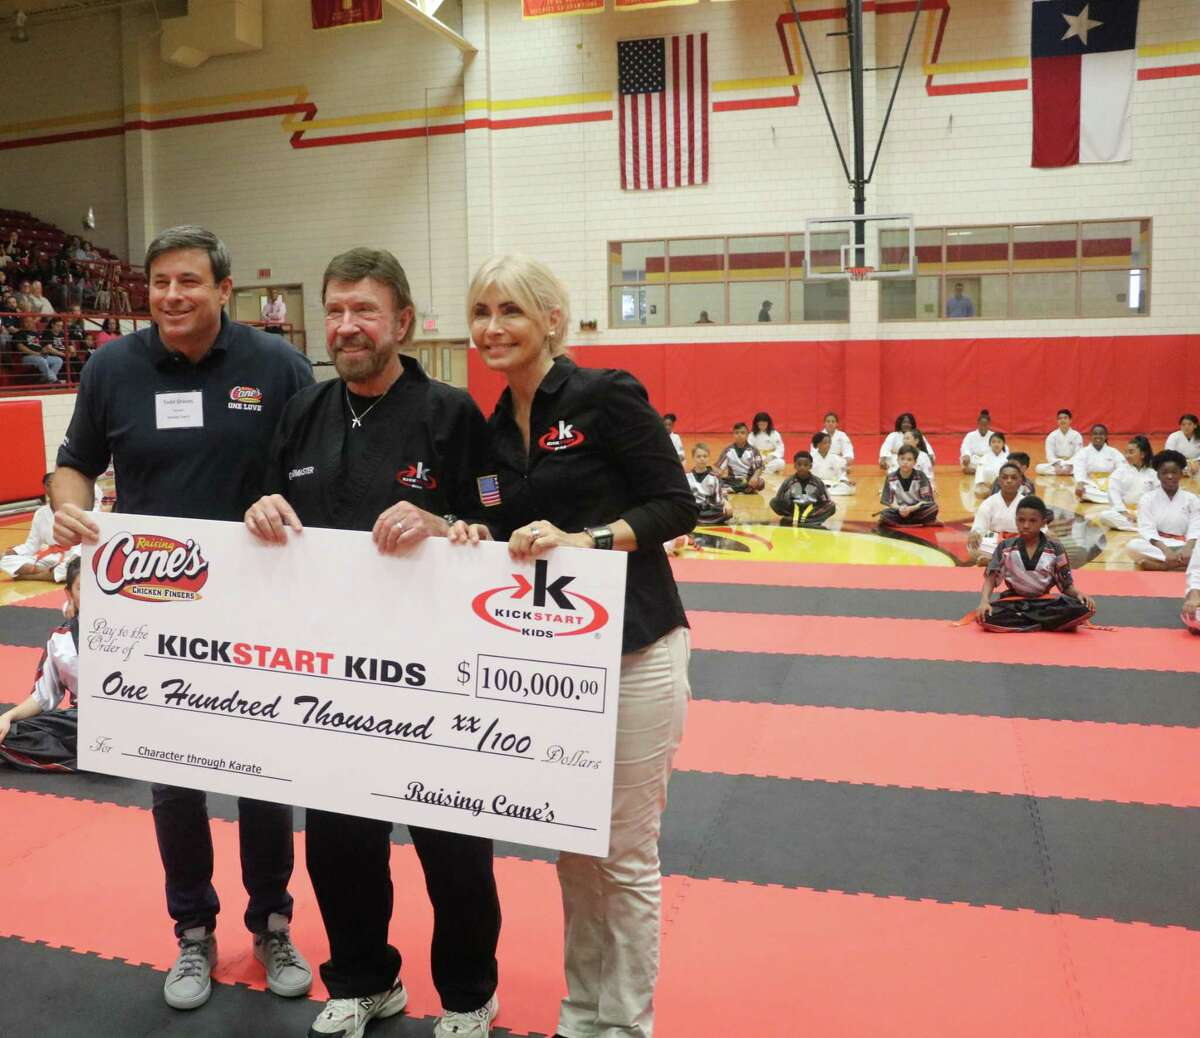 Kickstart Kids Chairs Chuck and Gena Norris receive a $100,000 donation from Raising Cane's CEO Todd Graves during Stafford MSD Kickstart Kids Belt Ceremony on Wednesday, May 8, in Stafford.